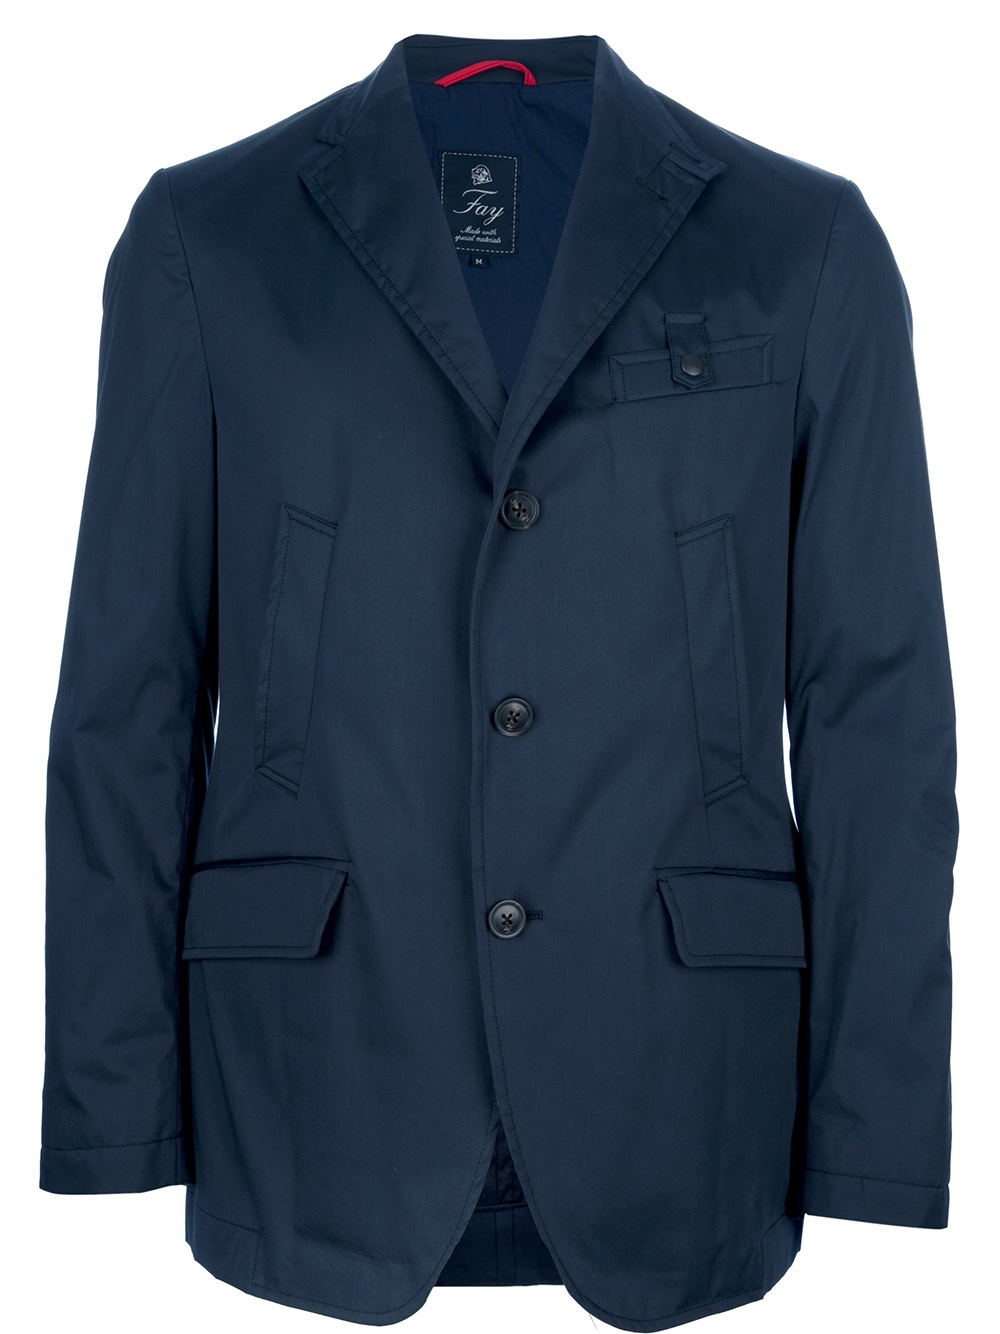 Fay Blazer Style Driving Jacket in Blue for Men